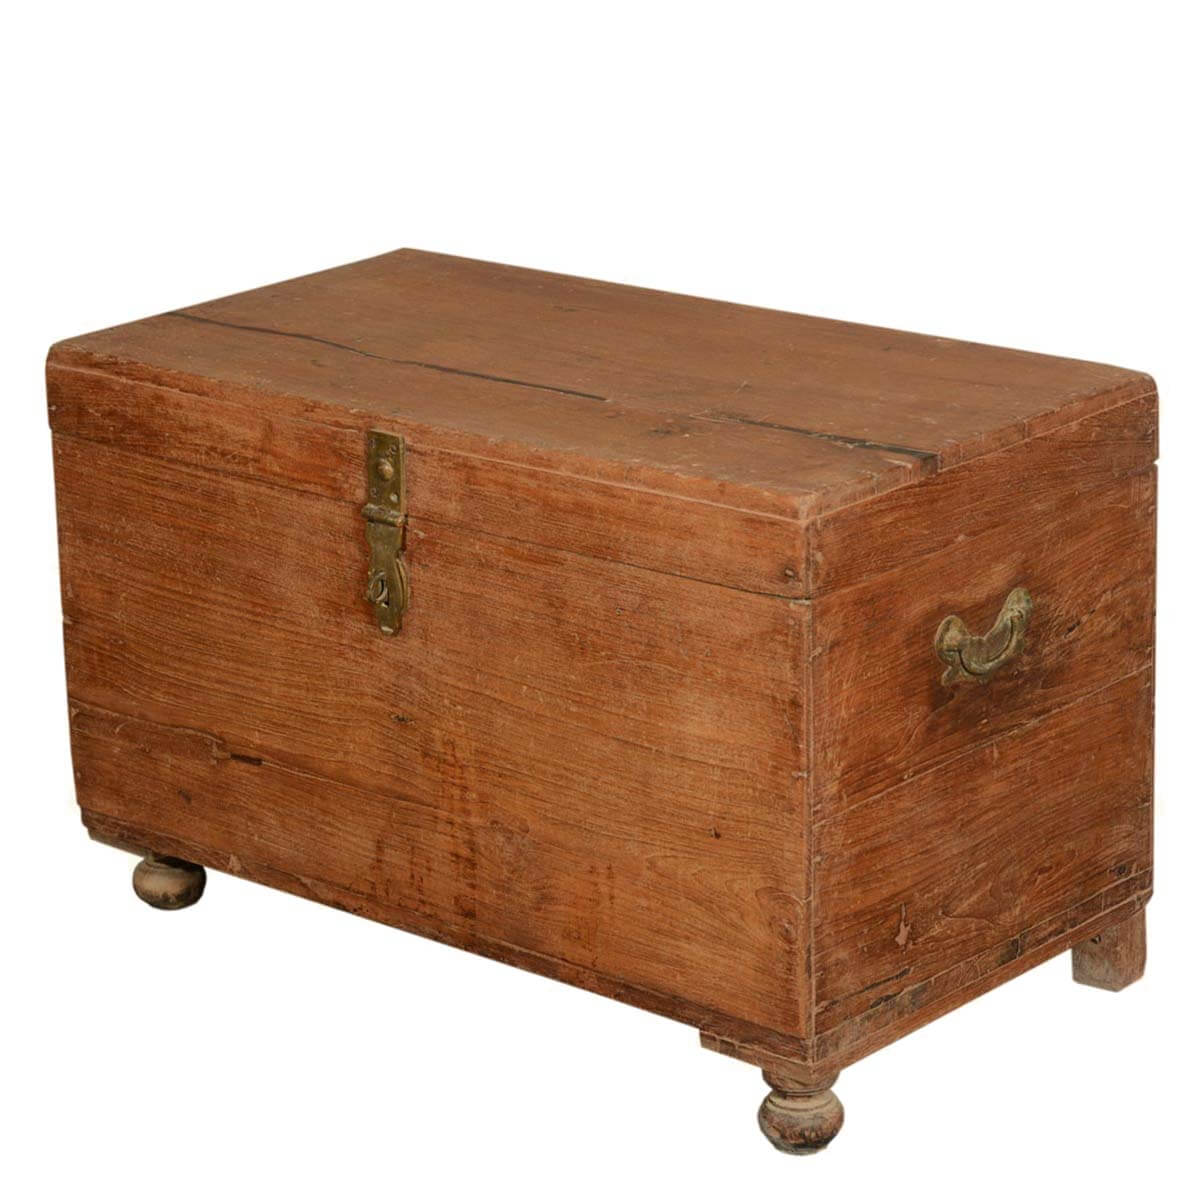 Grinnell primitive reclaimed wood storage coffee table chest